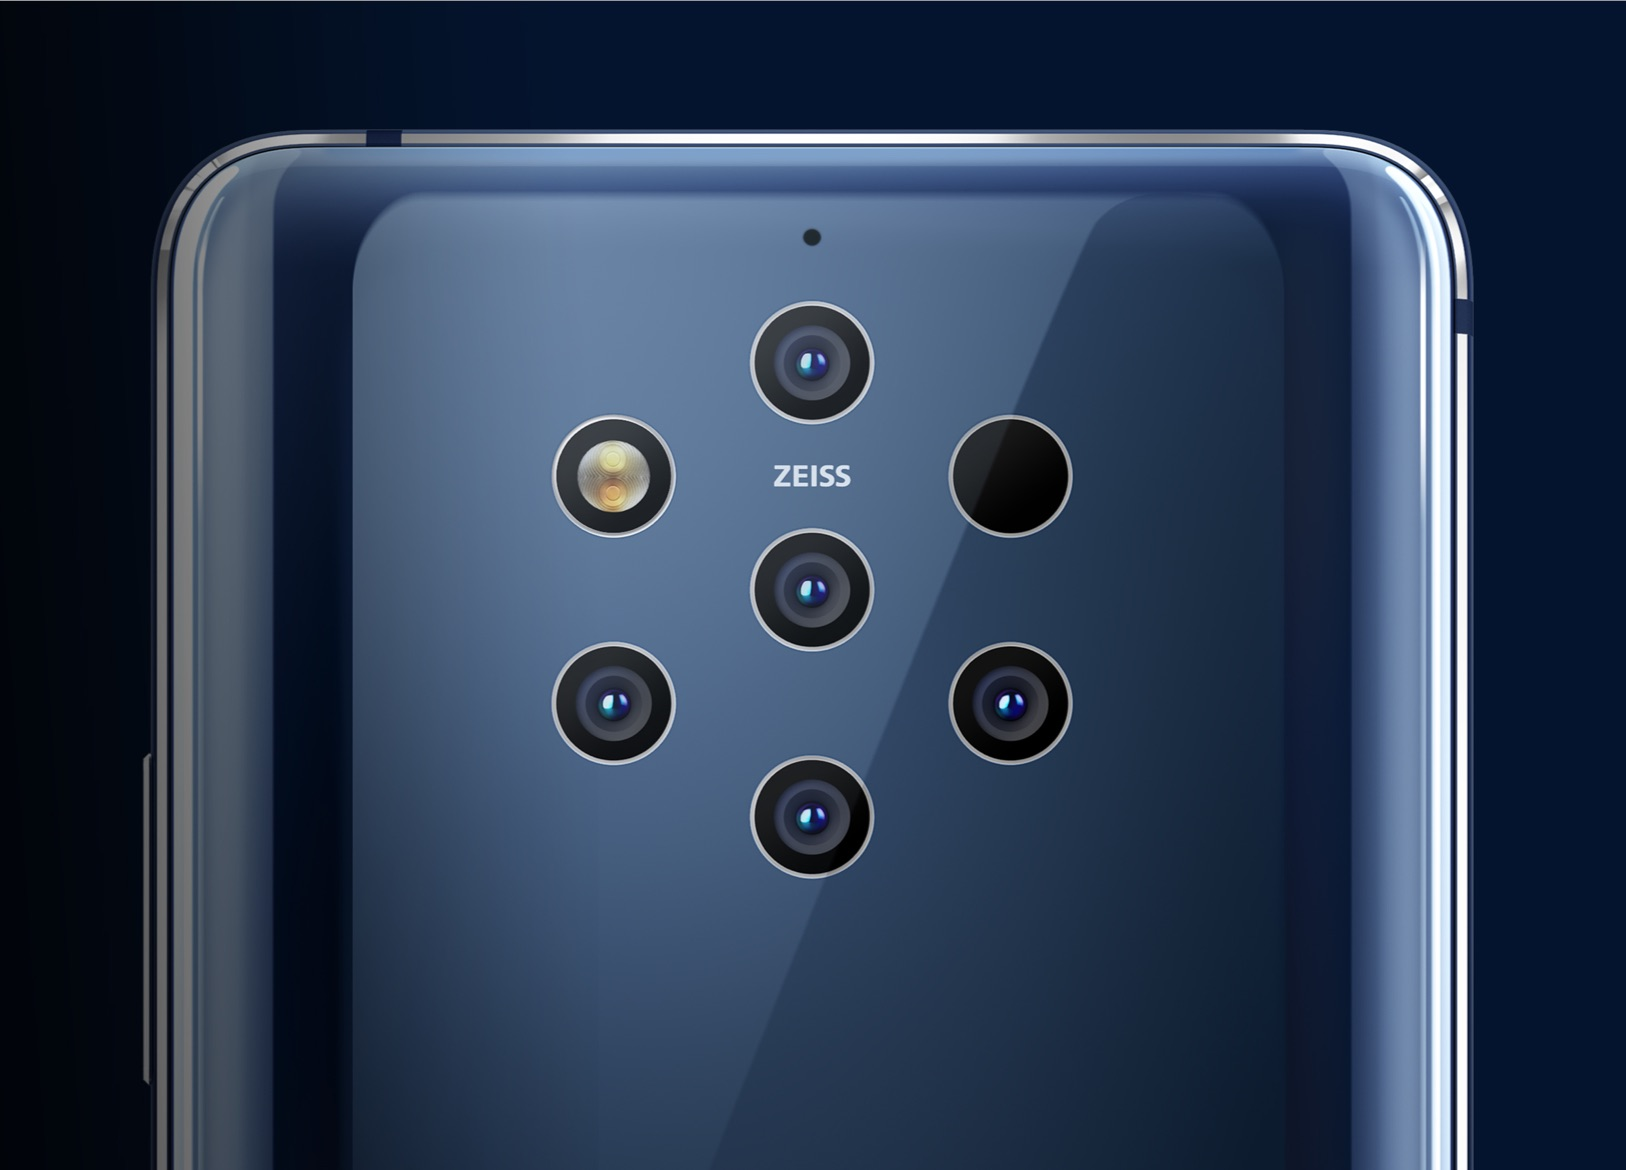 Nokia 9 PureView Officially Goes on Sale in the U.S. - More Freebies and Discounts Included With Your Purchase